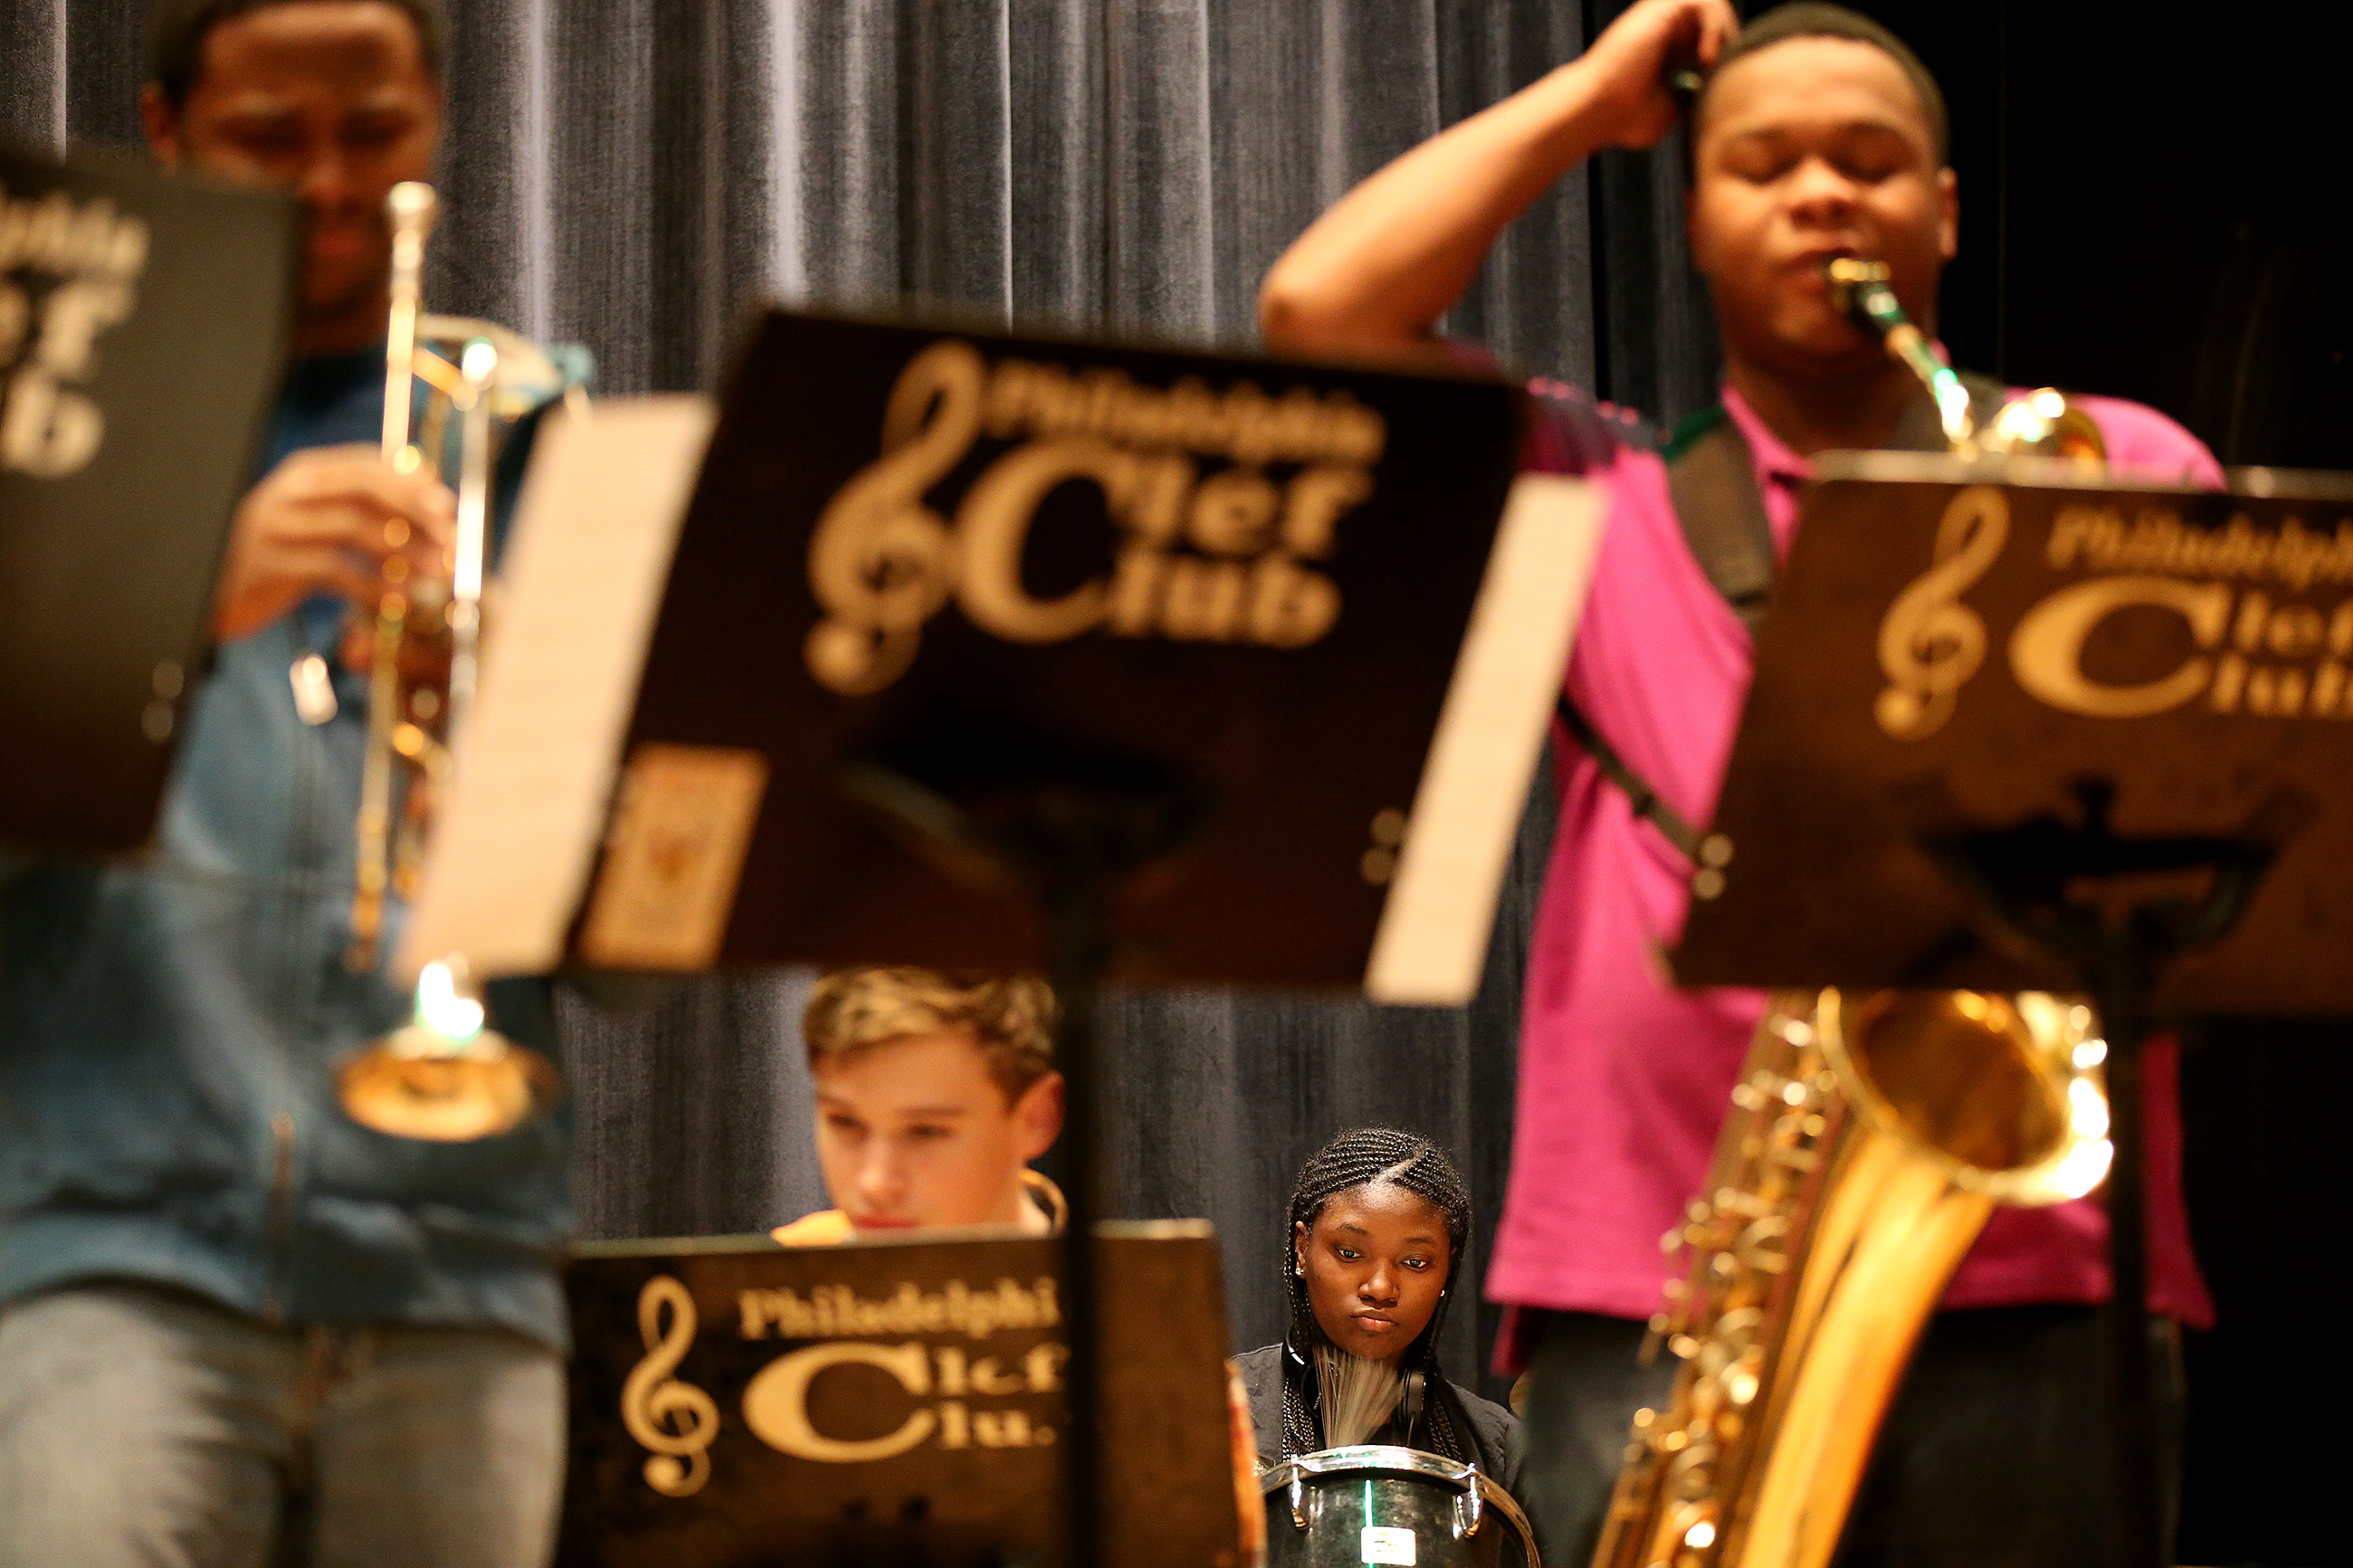 Kyah McCall, 16, background, plays the drums as members of the Clef Club Student Ensemble rehearse at the Clef Club. The ensemble will be part of the Watch Night for Social Justice concert. (DAVID MAIALETTI / Staff Photographer)